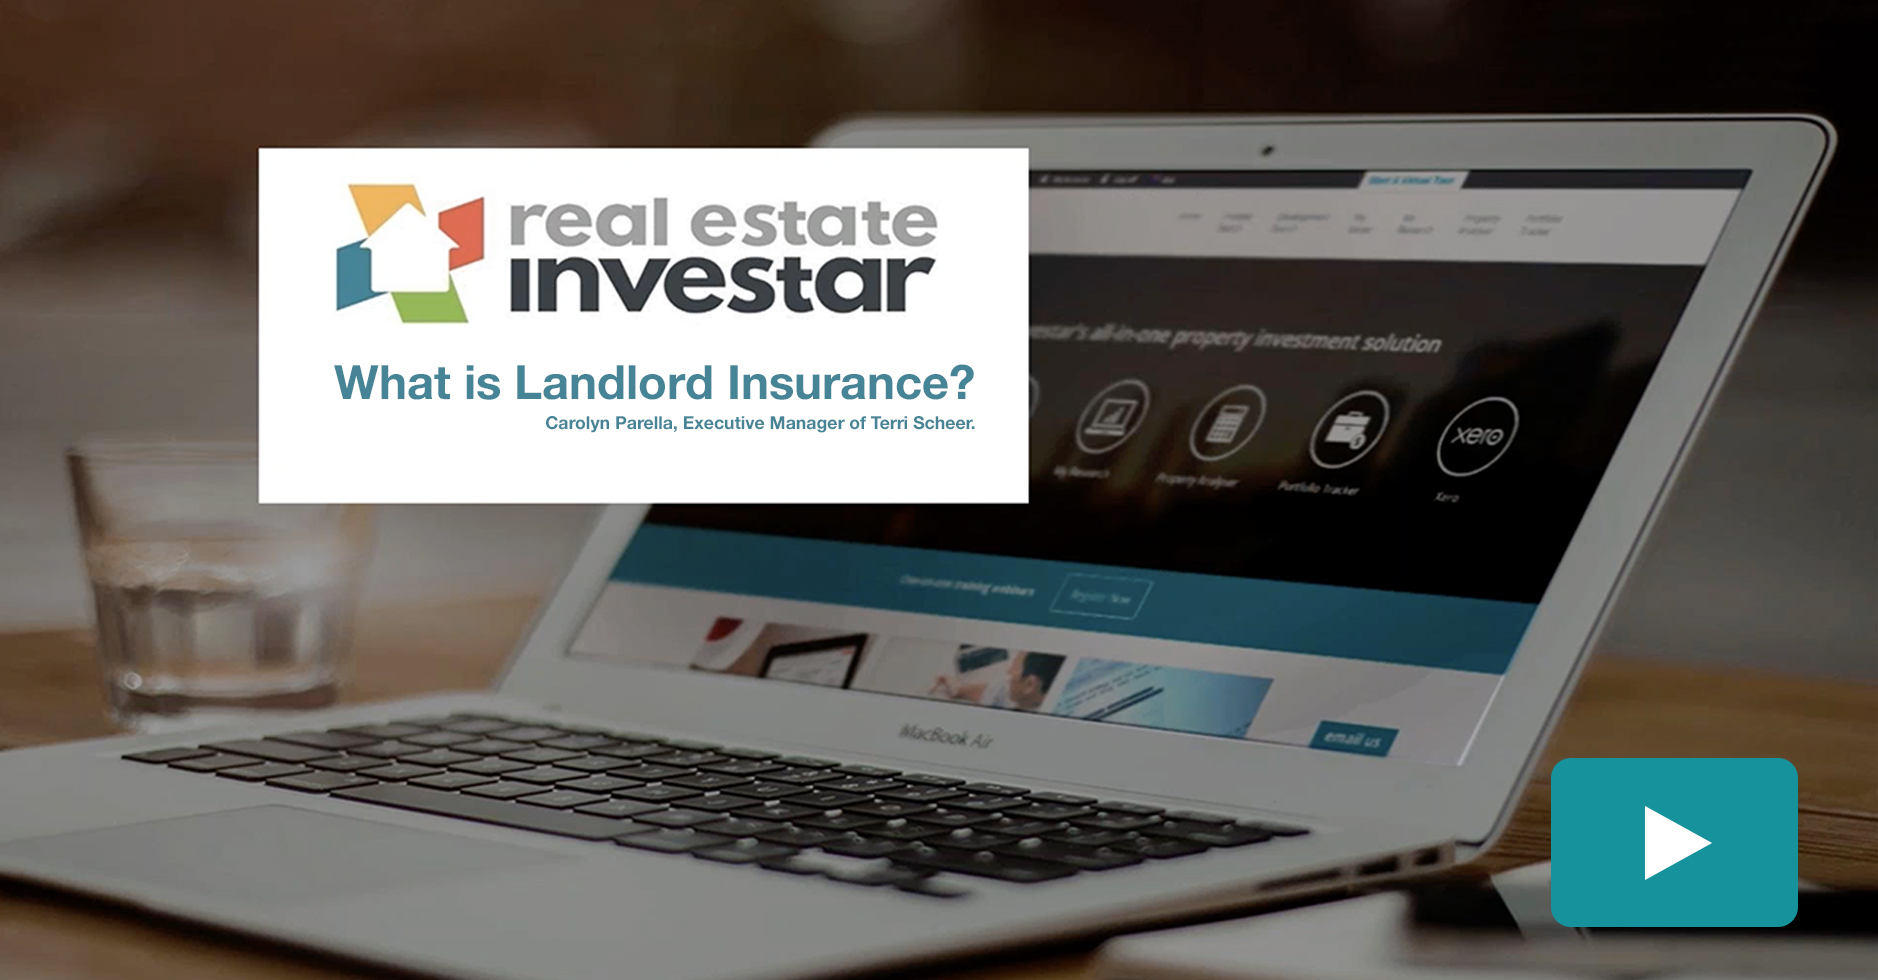 WhatisLandlordInsurance Play World first technology to end rental cash bonds